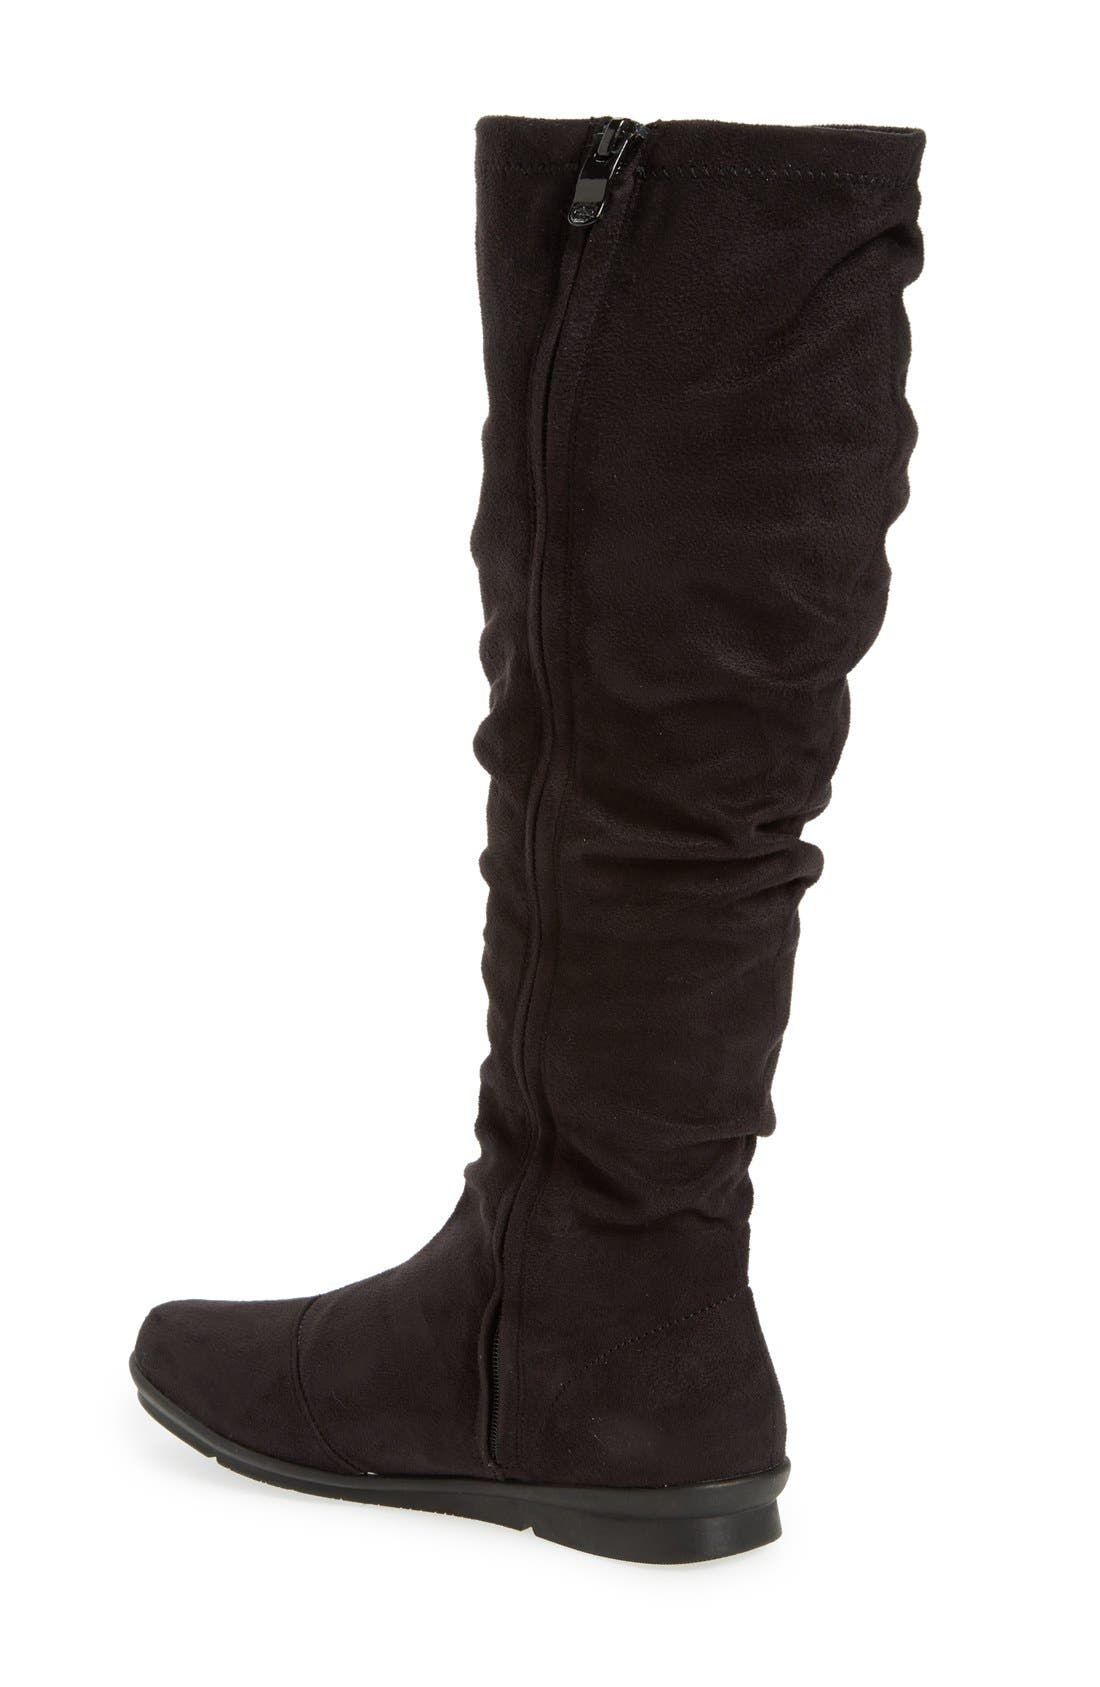 Alternate Image 2  - Bussola 'Creta' Water Resistant Slouchy Knee-High Boot (Women)